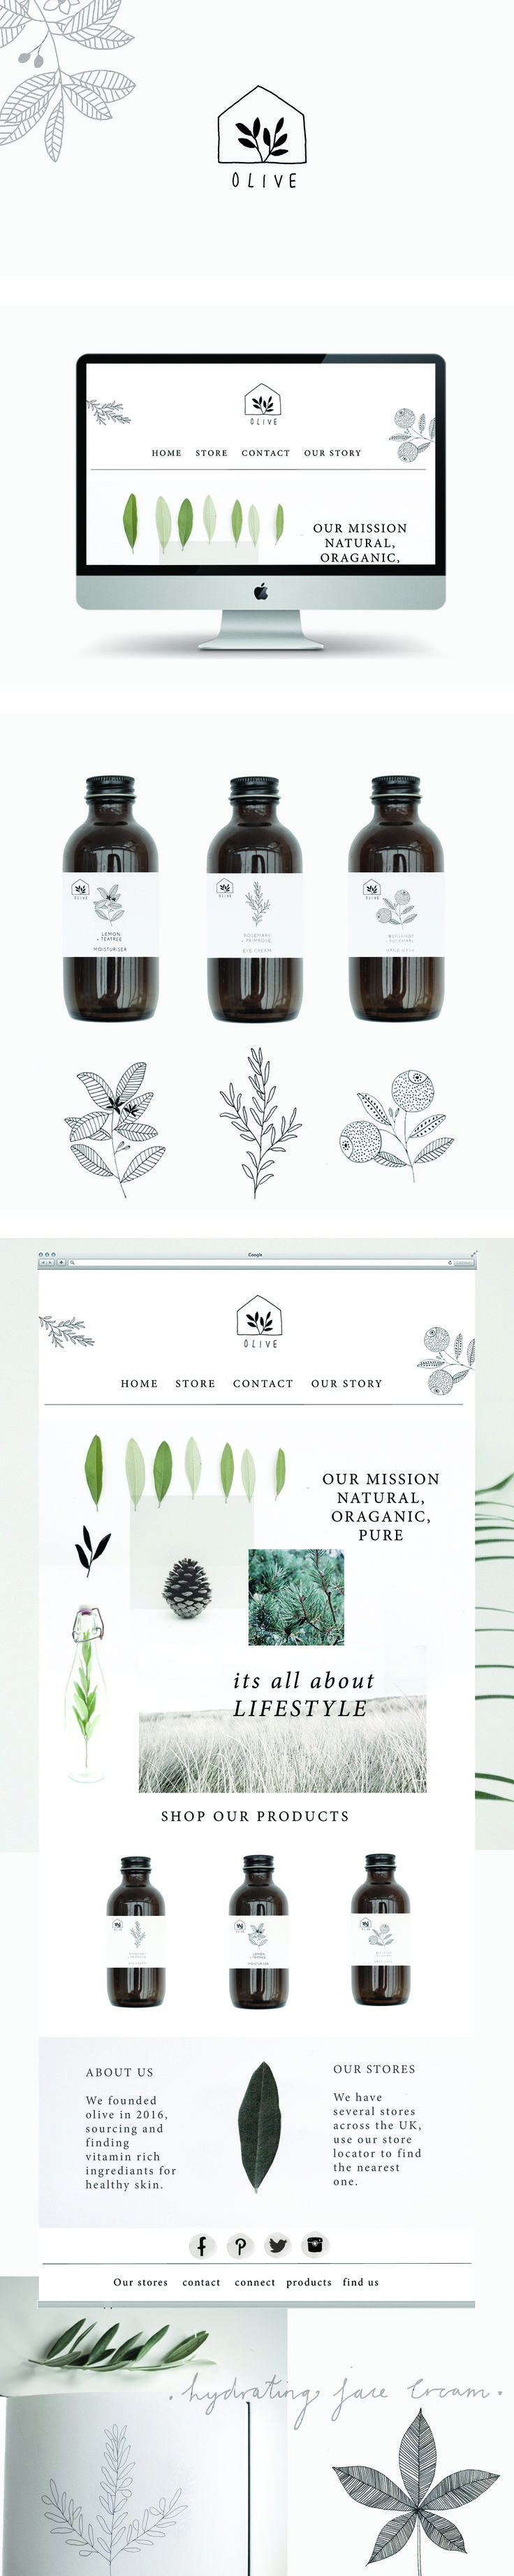 Olive branding and website by Ryn Frank www.rynfrank.co.uk